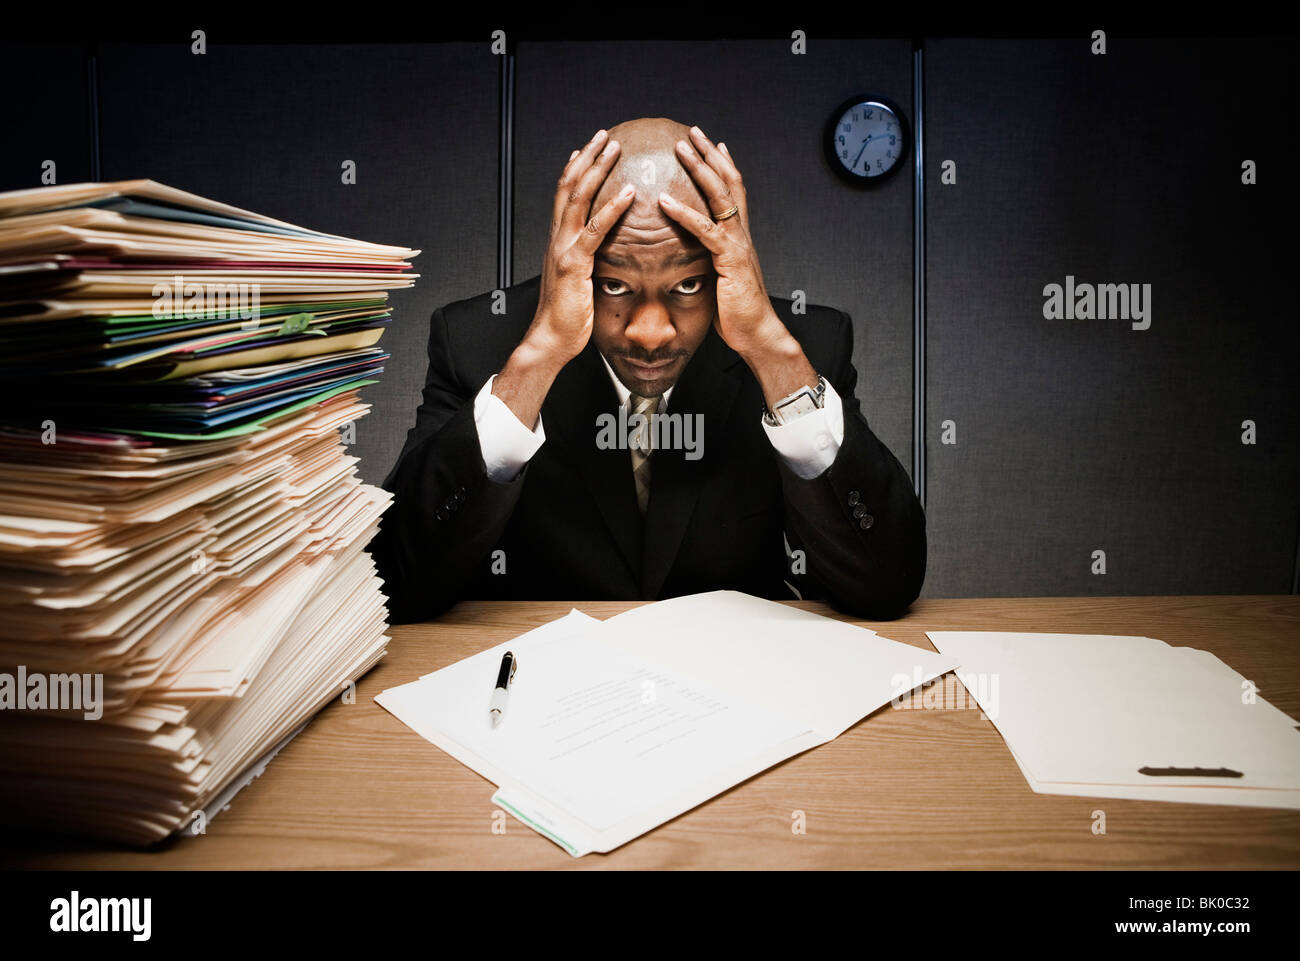 Businessman at desk with pile of folders - Stock Image